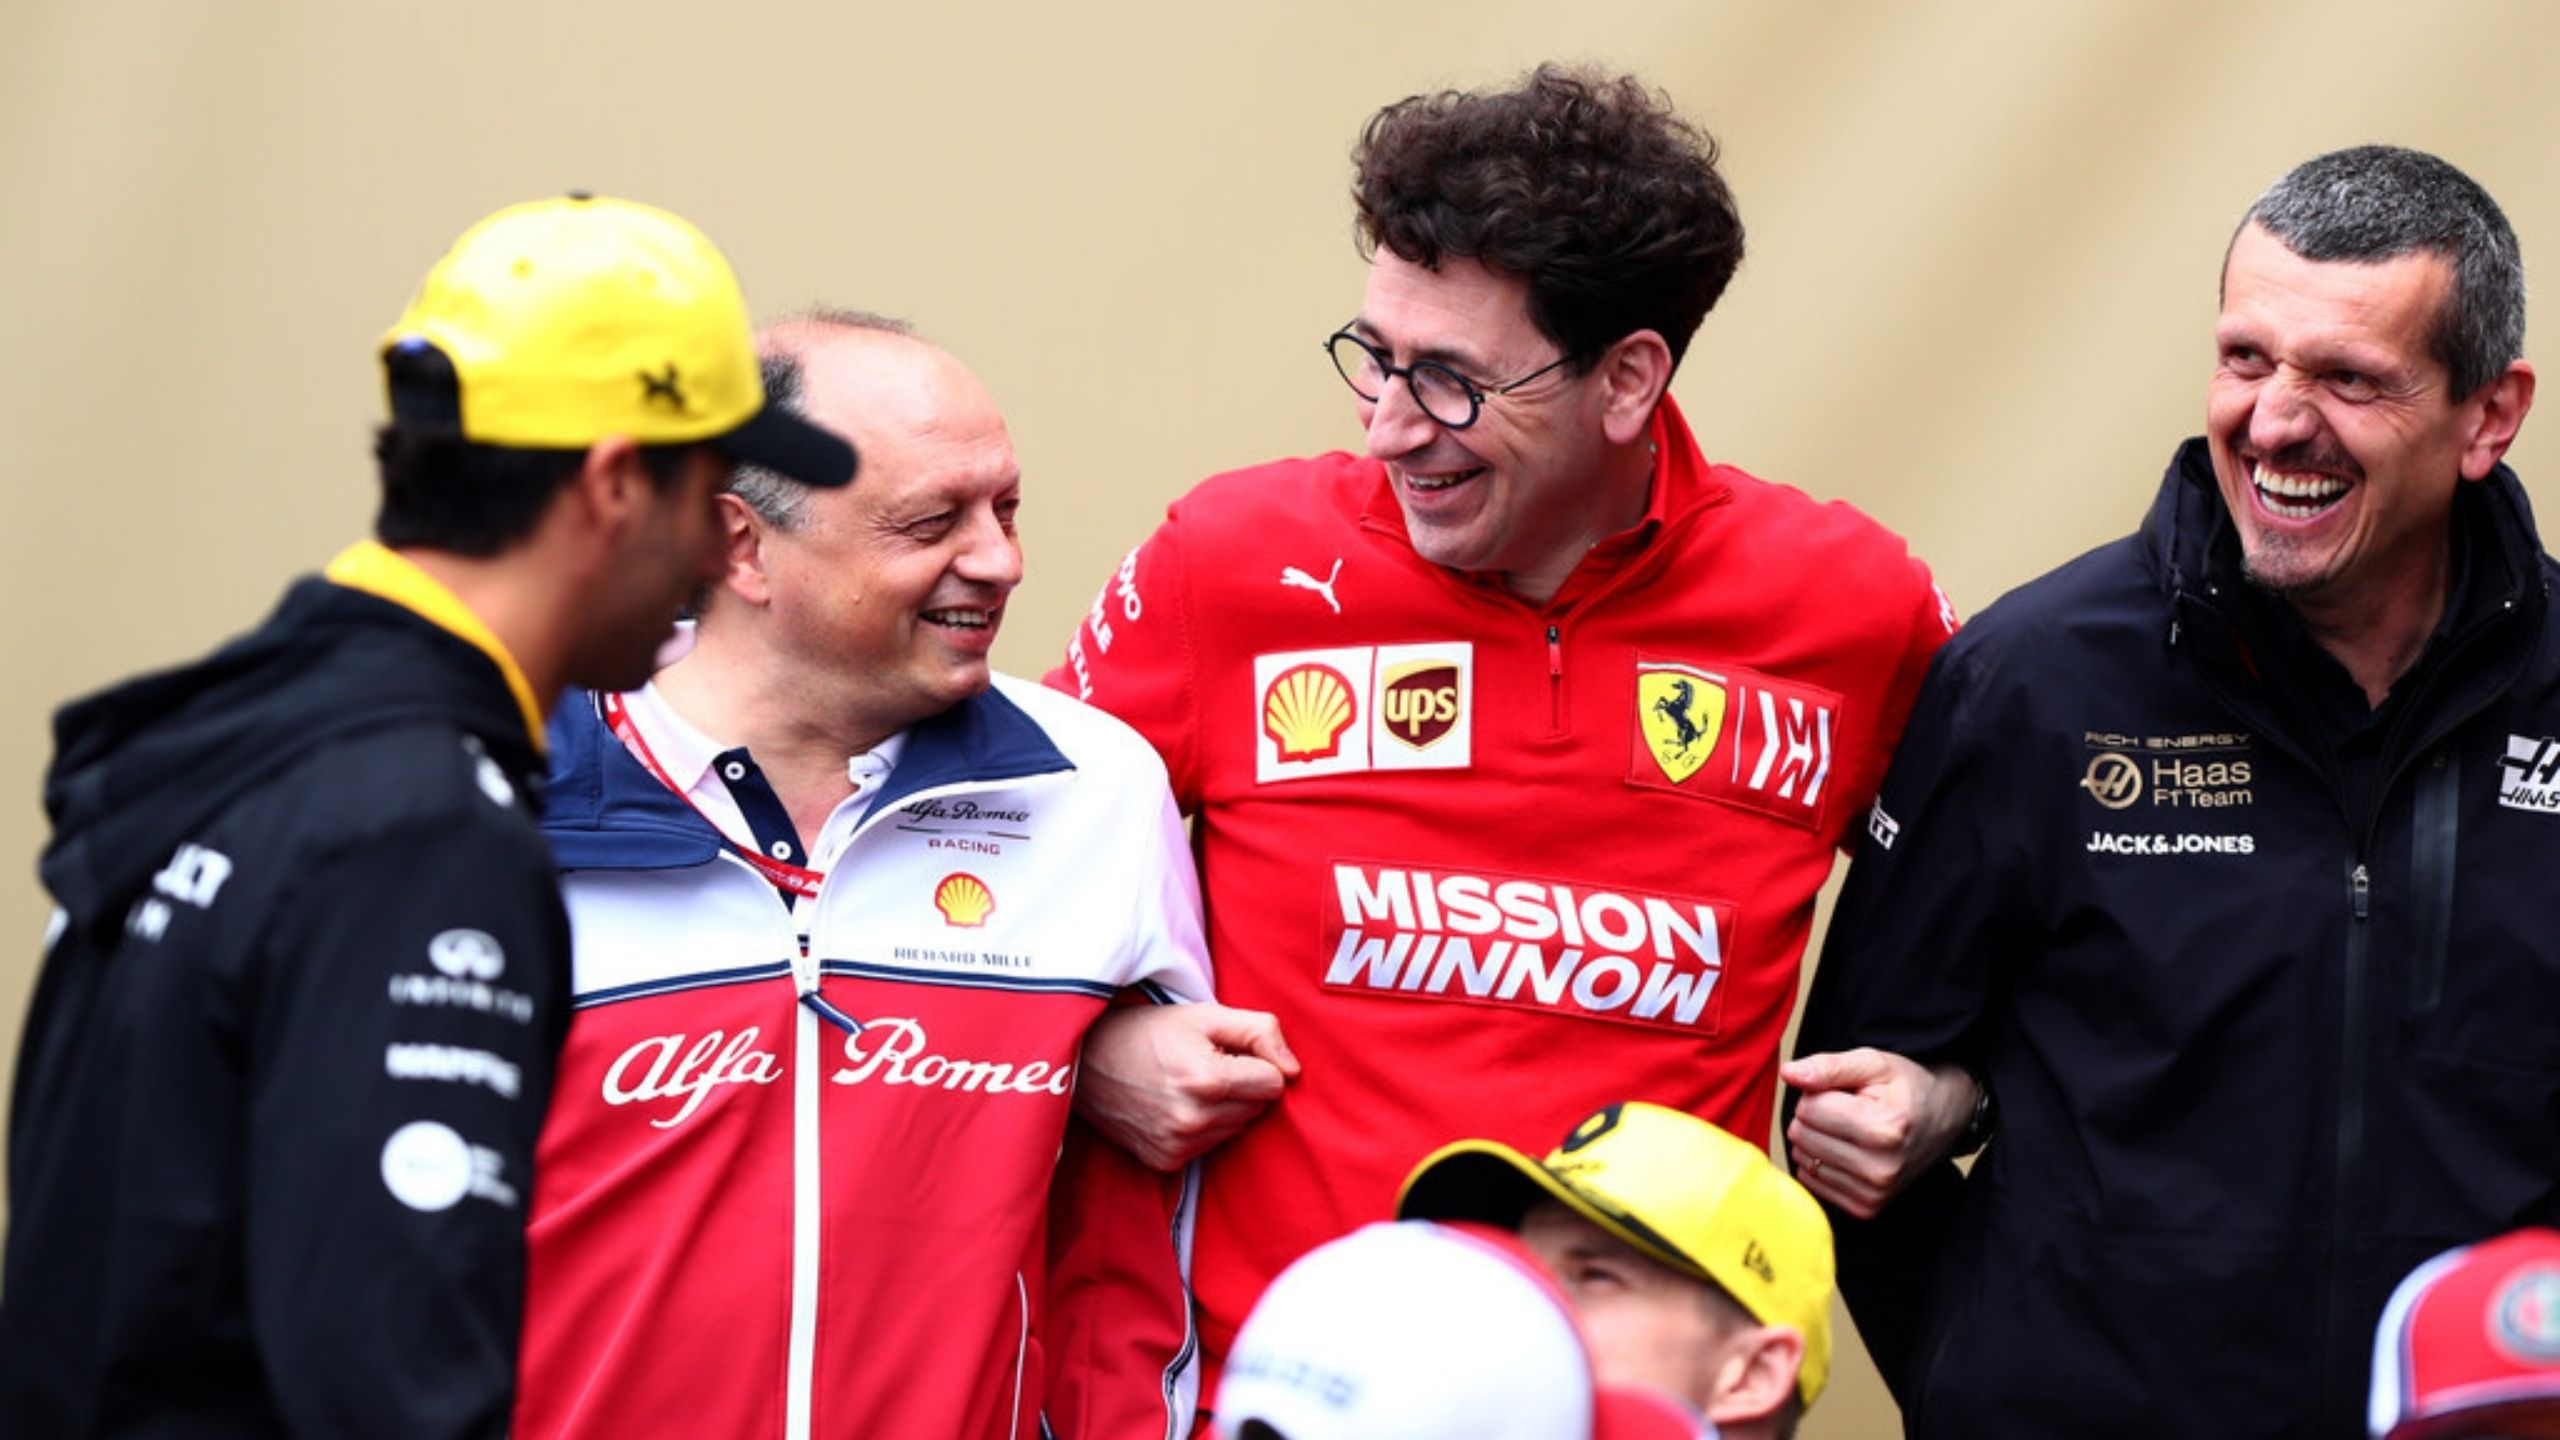 """The presence of client teams seriously helps us out"" - Ferrari boss Mattia Binotto grateful to Haas for impending debut of Mick Schumacher"